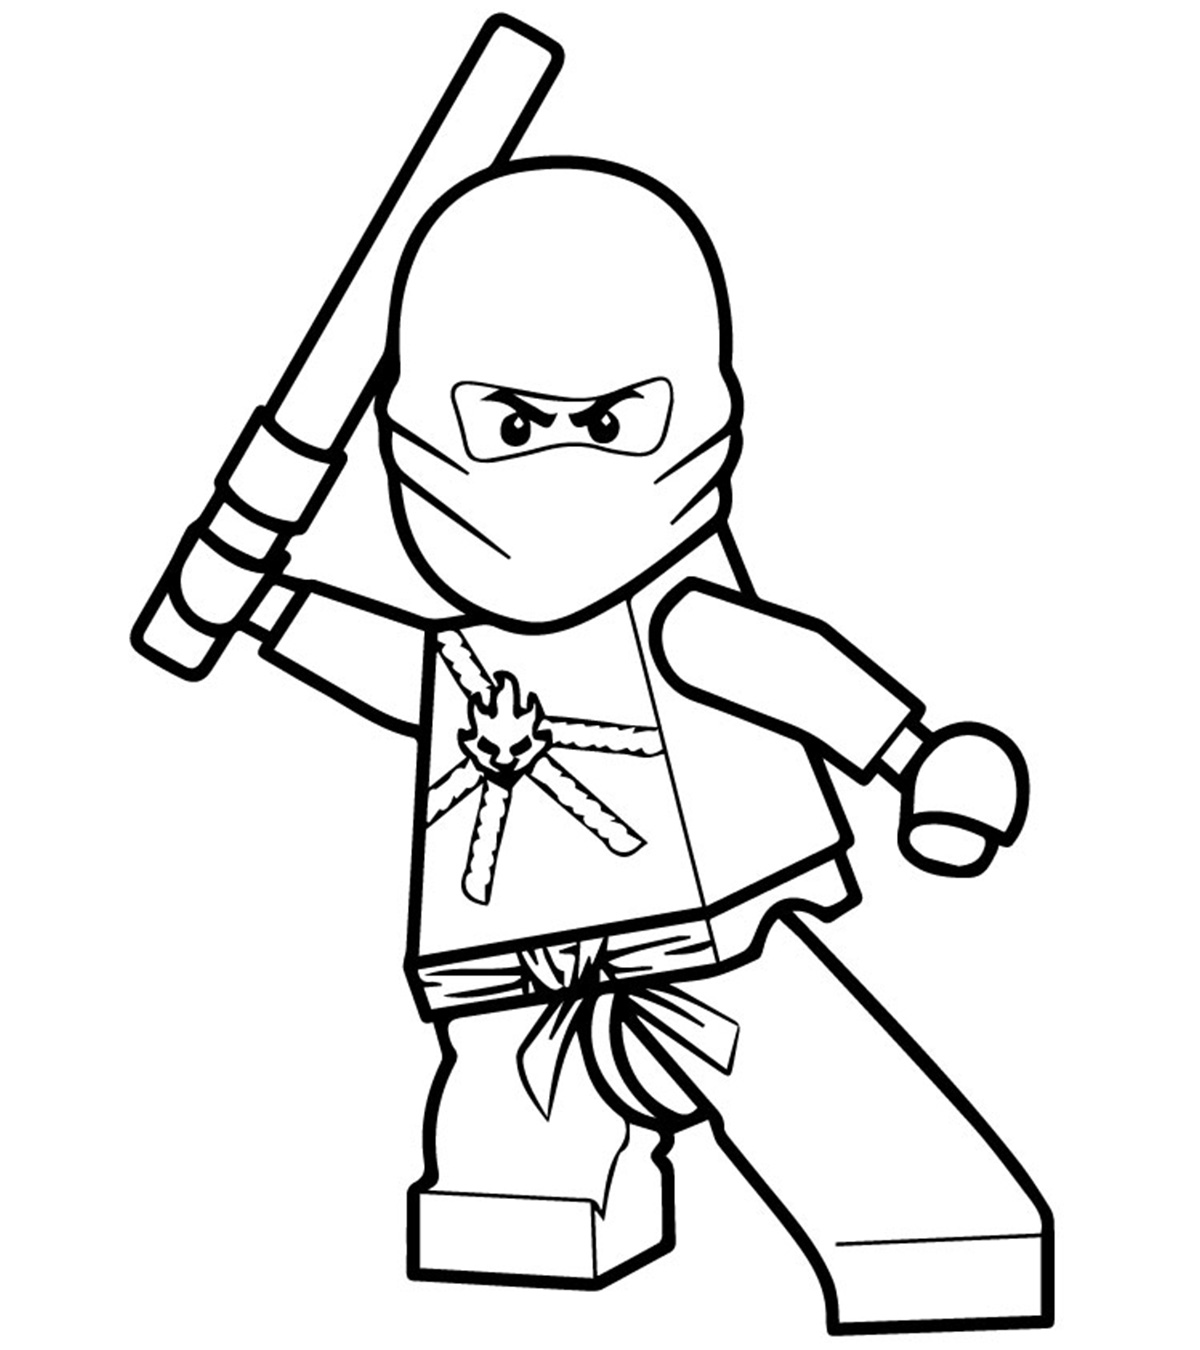 red ninja coloring pages cartoon coloring pages momjunction red ninja pages coloring